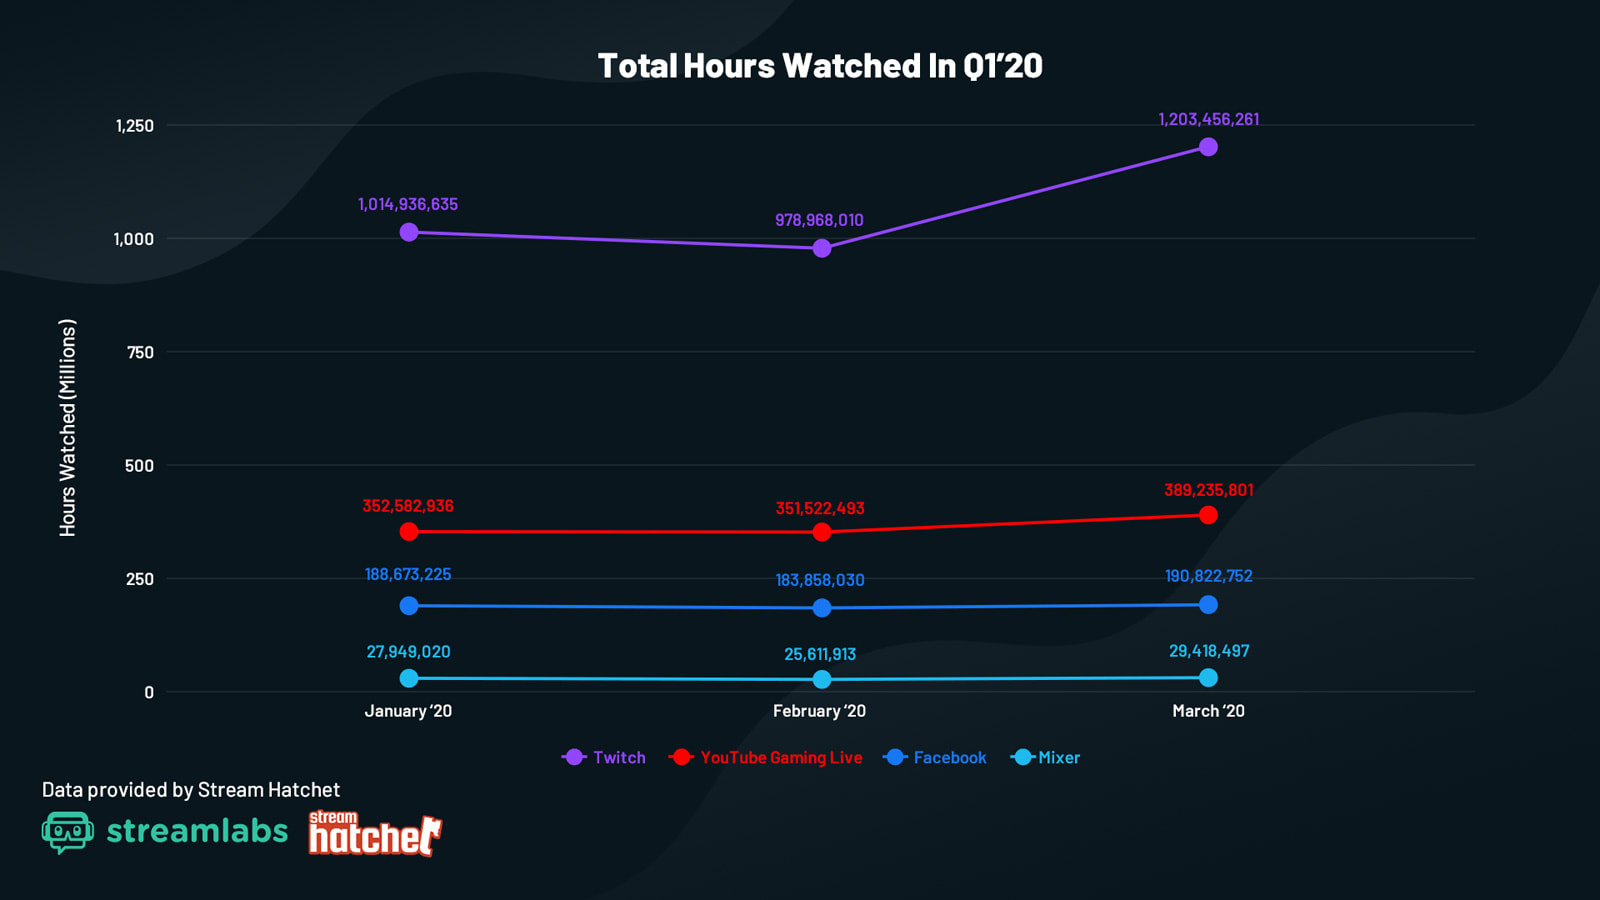 Livestreaming service hours watched Q1 2020